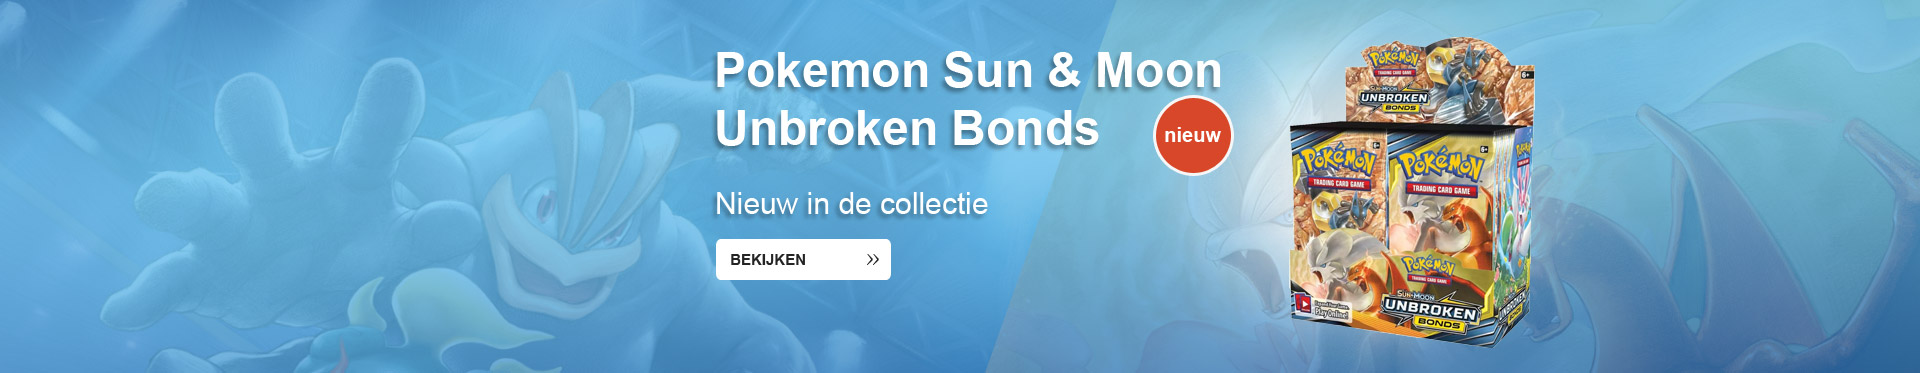 Pokemon Sun & Moon - Unbroken Bonds